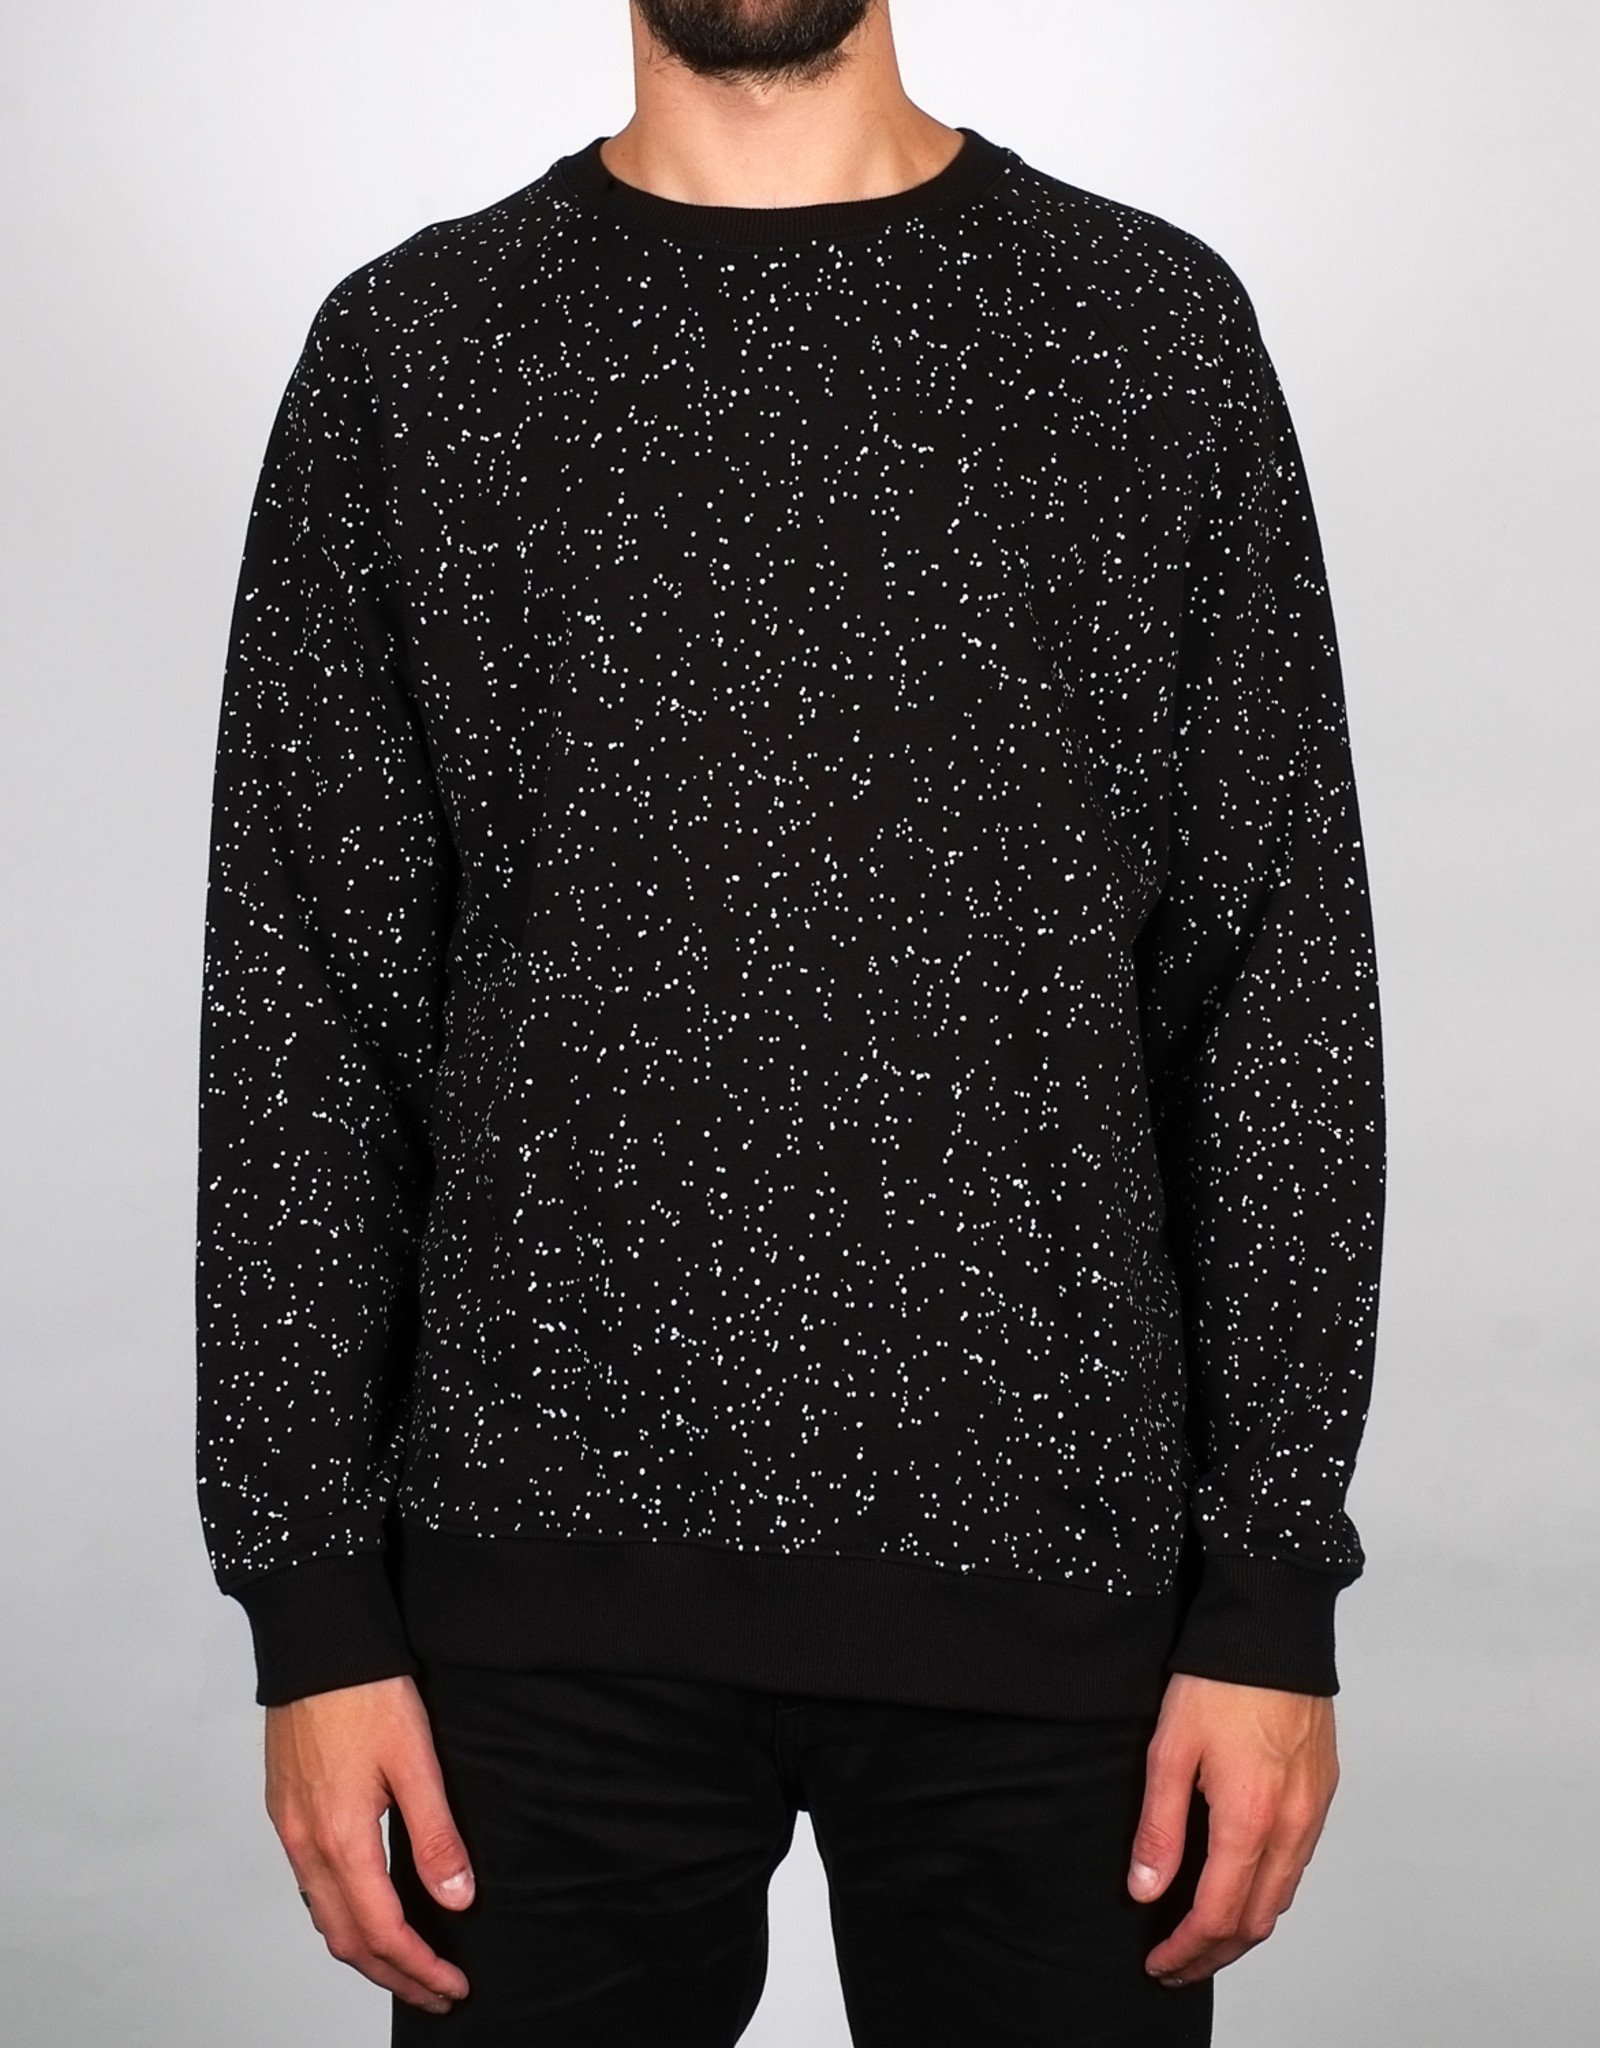 Dedicated SWEATSHIRT DEEP SPACE BLACK MALMOE